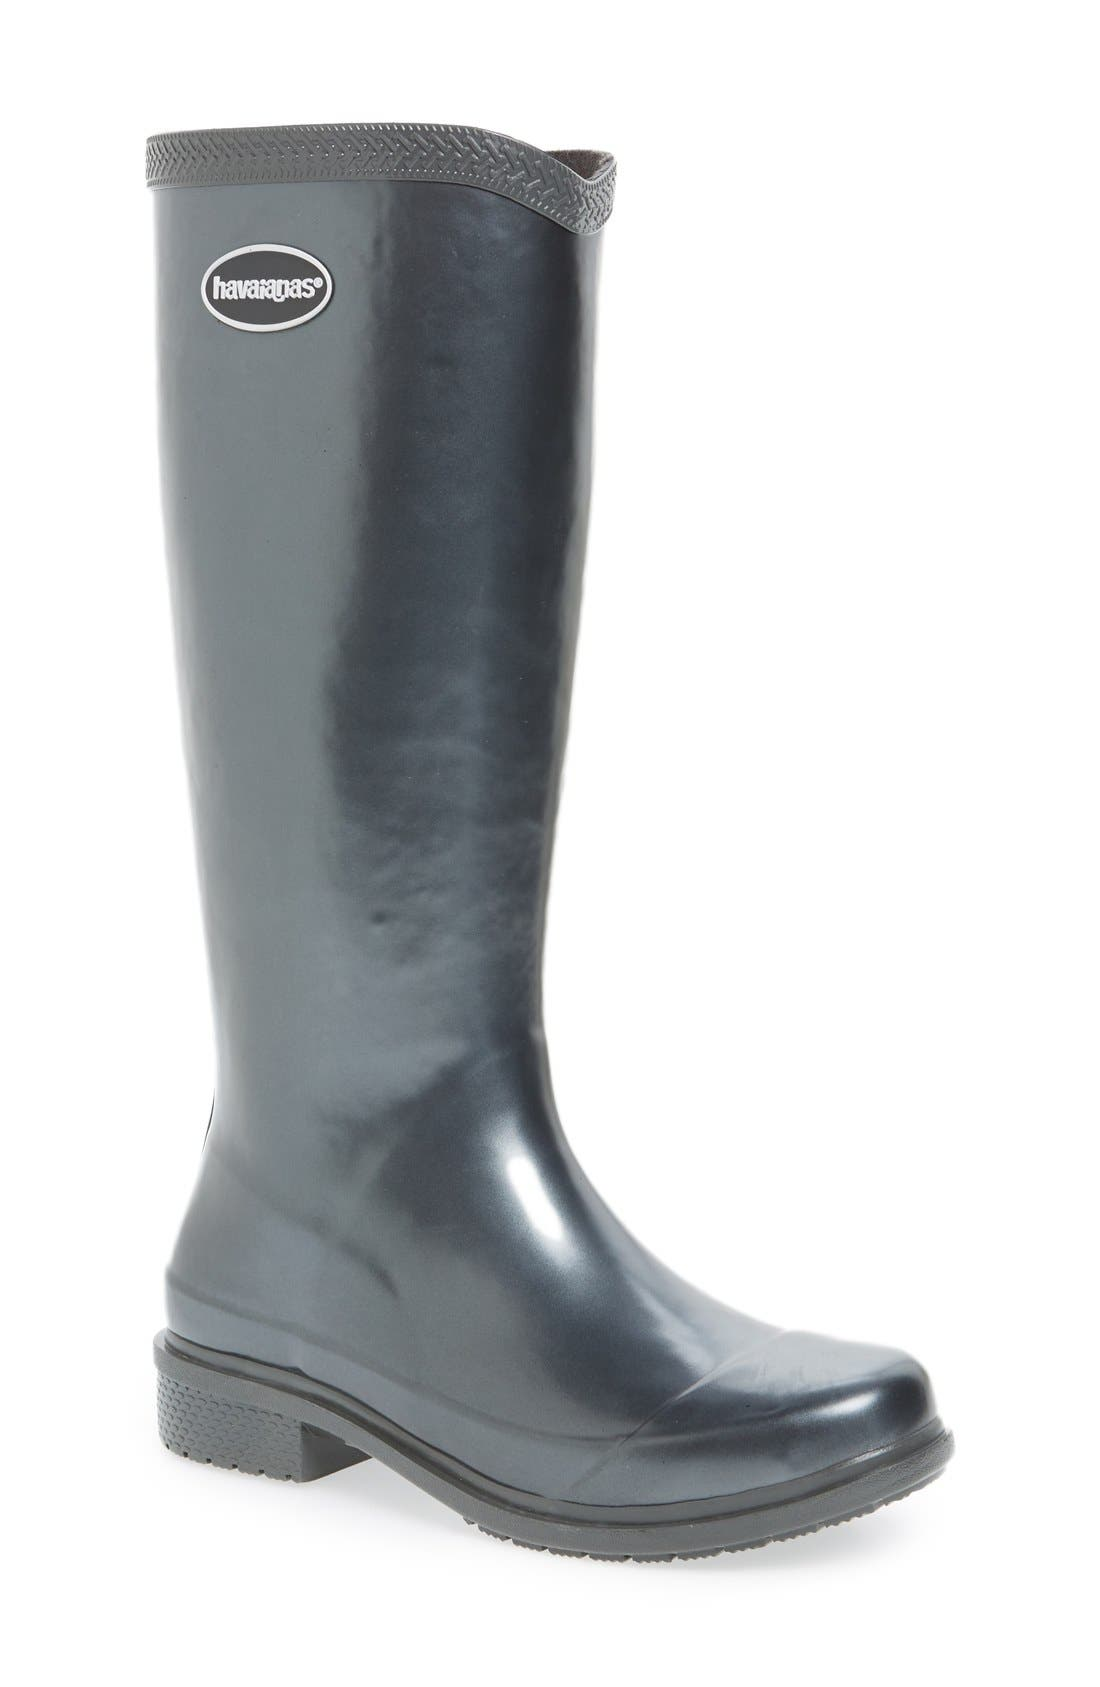 Alternate Image 1 Selected - Havaianas 'Galochas Hi Metallic' Waterproof Rain Boot (Women)